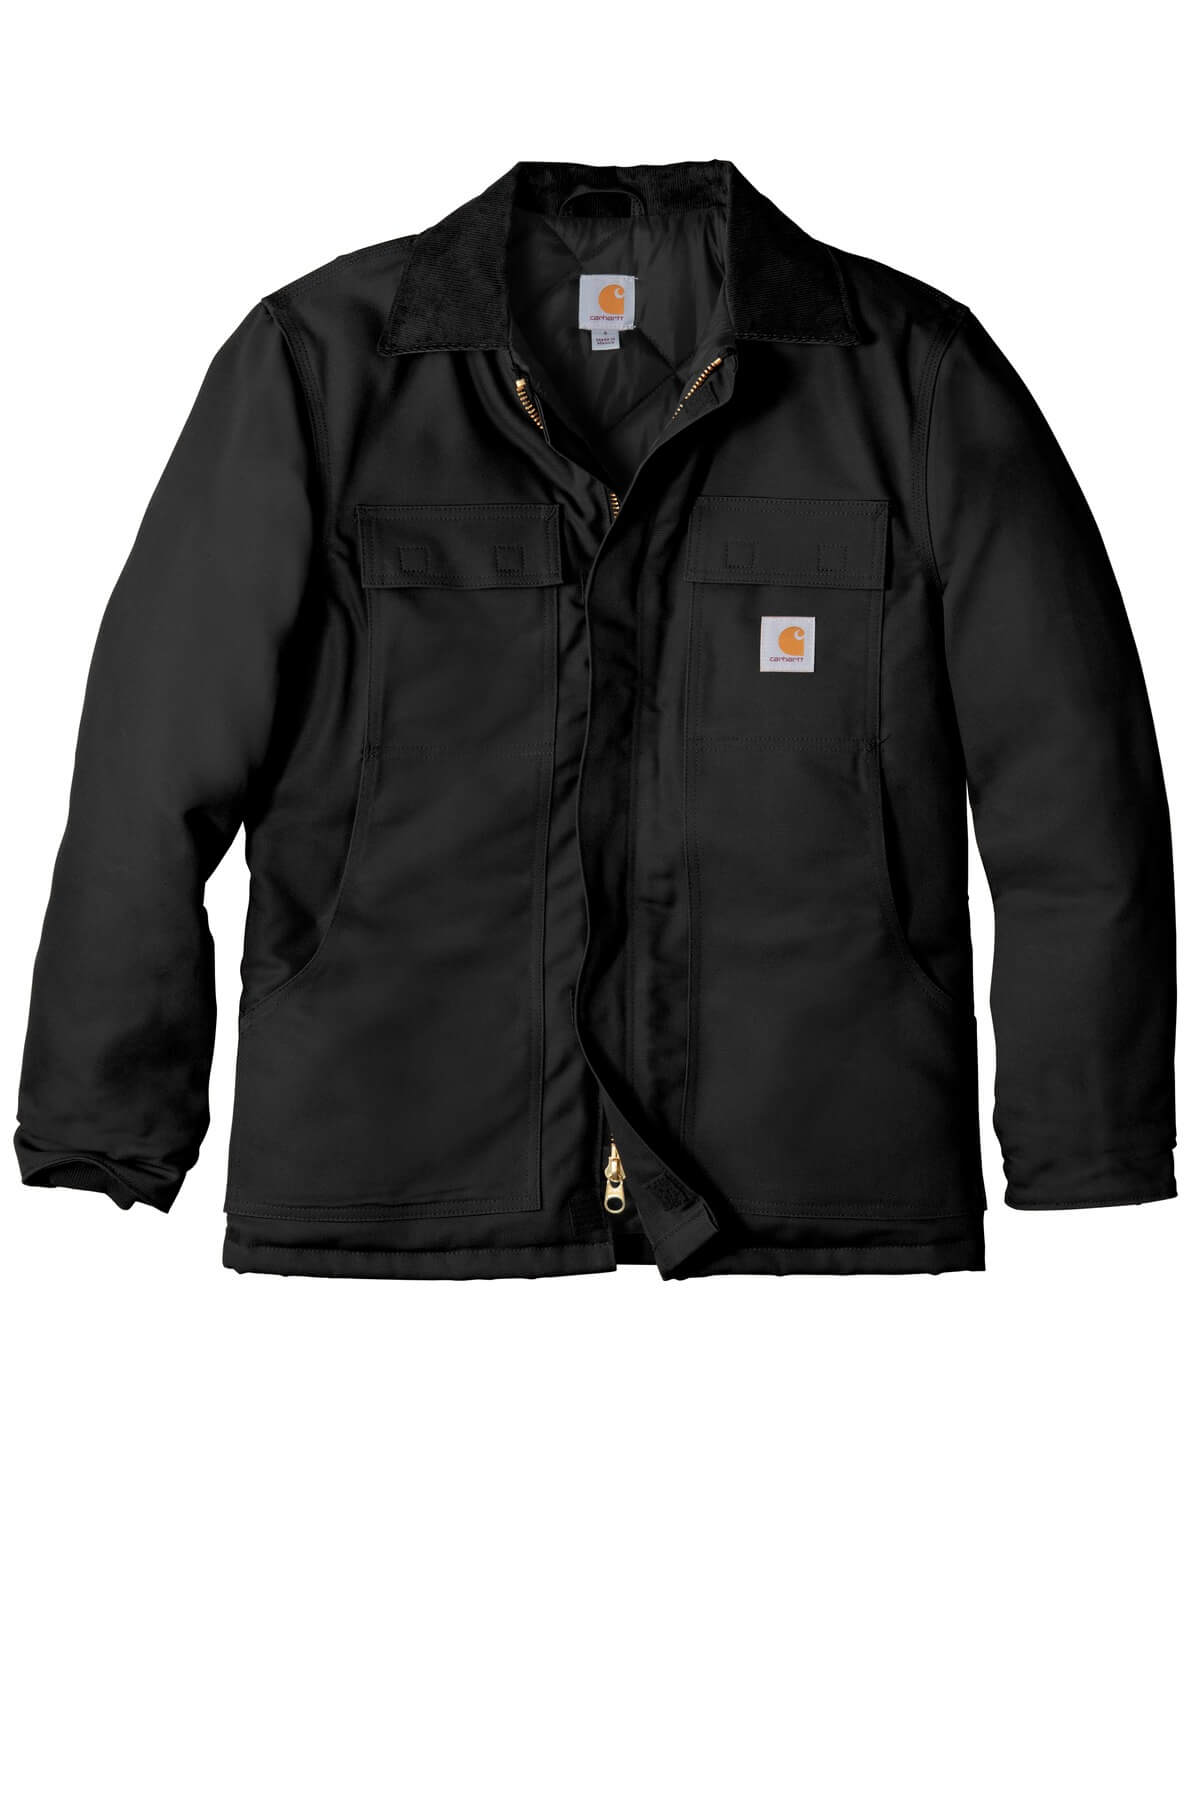 Carhartt Men's Tall Duck Traditional Coat